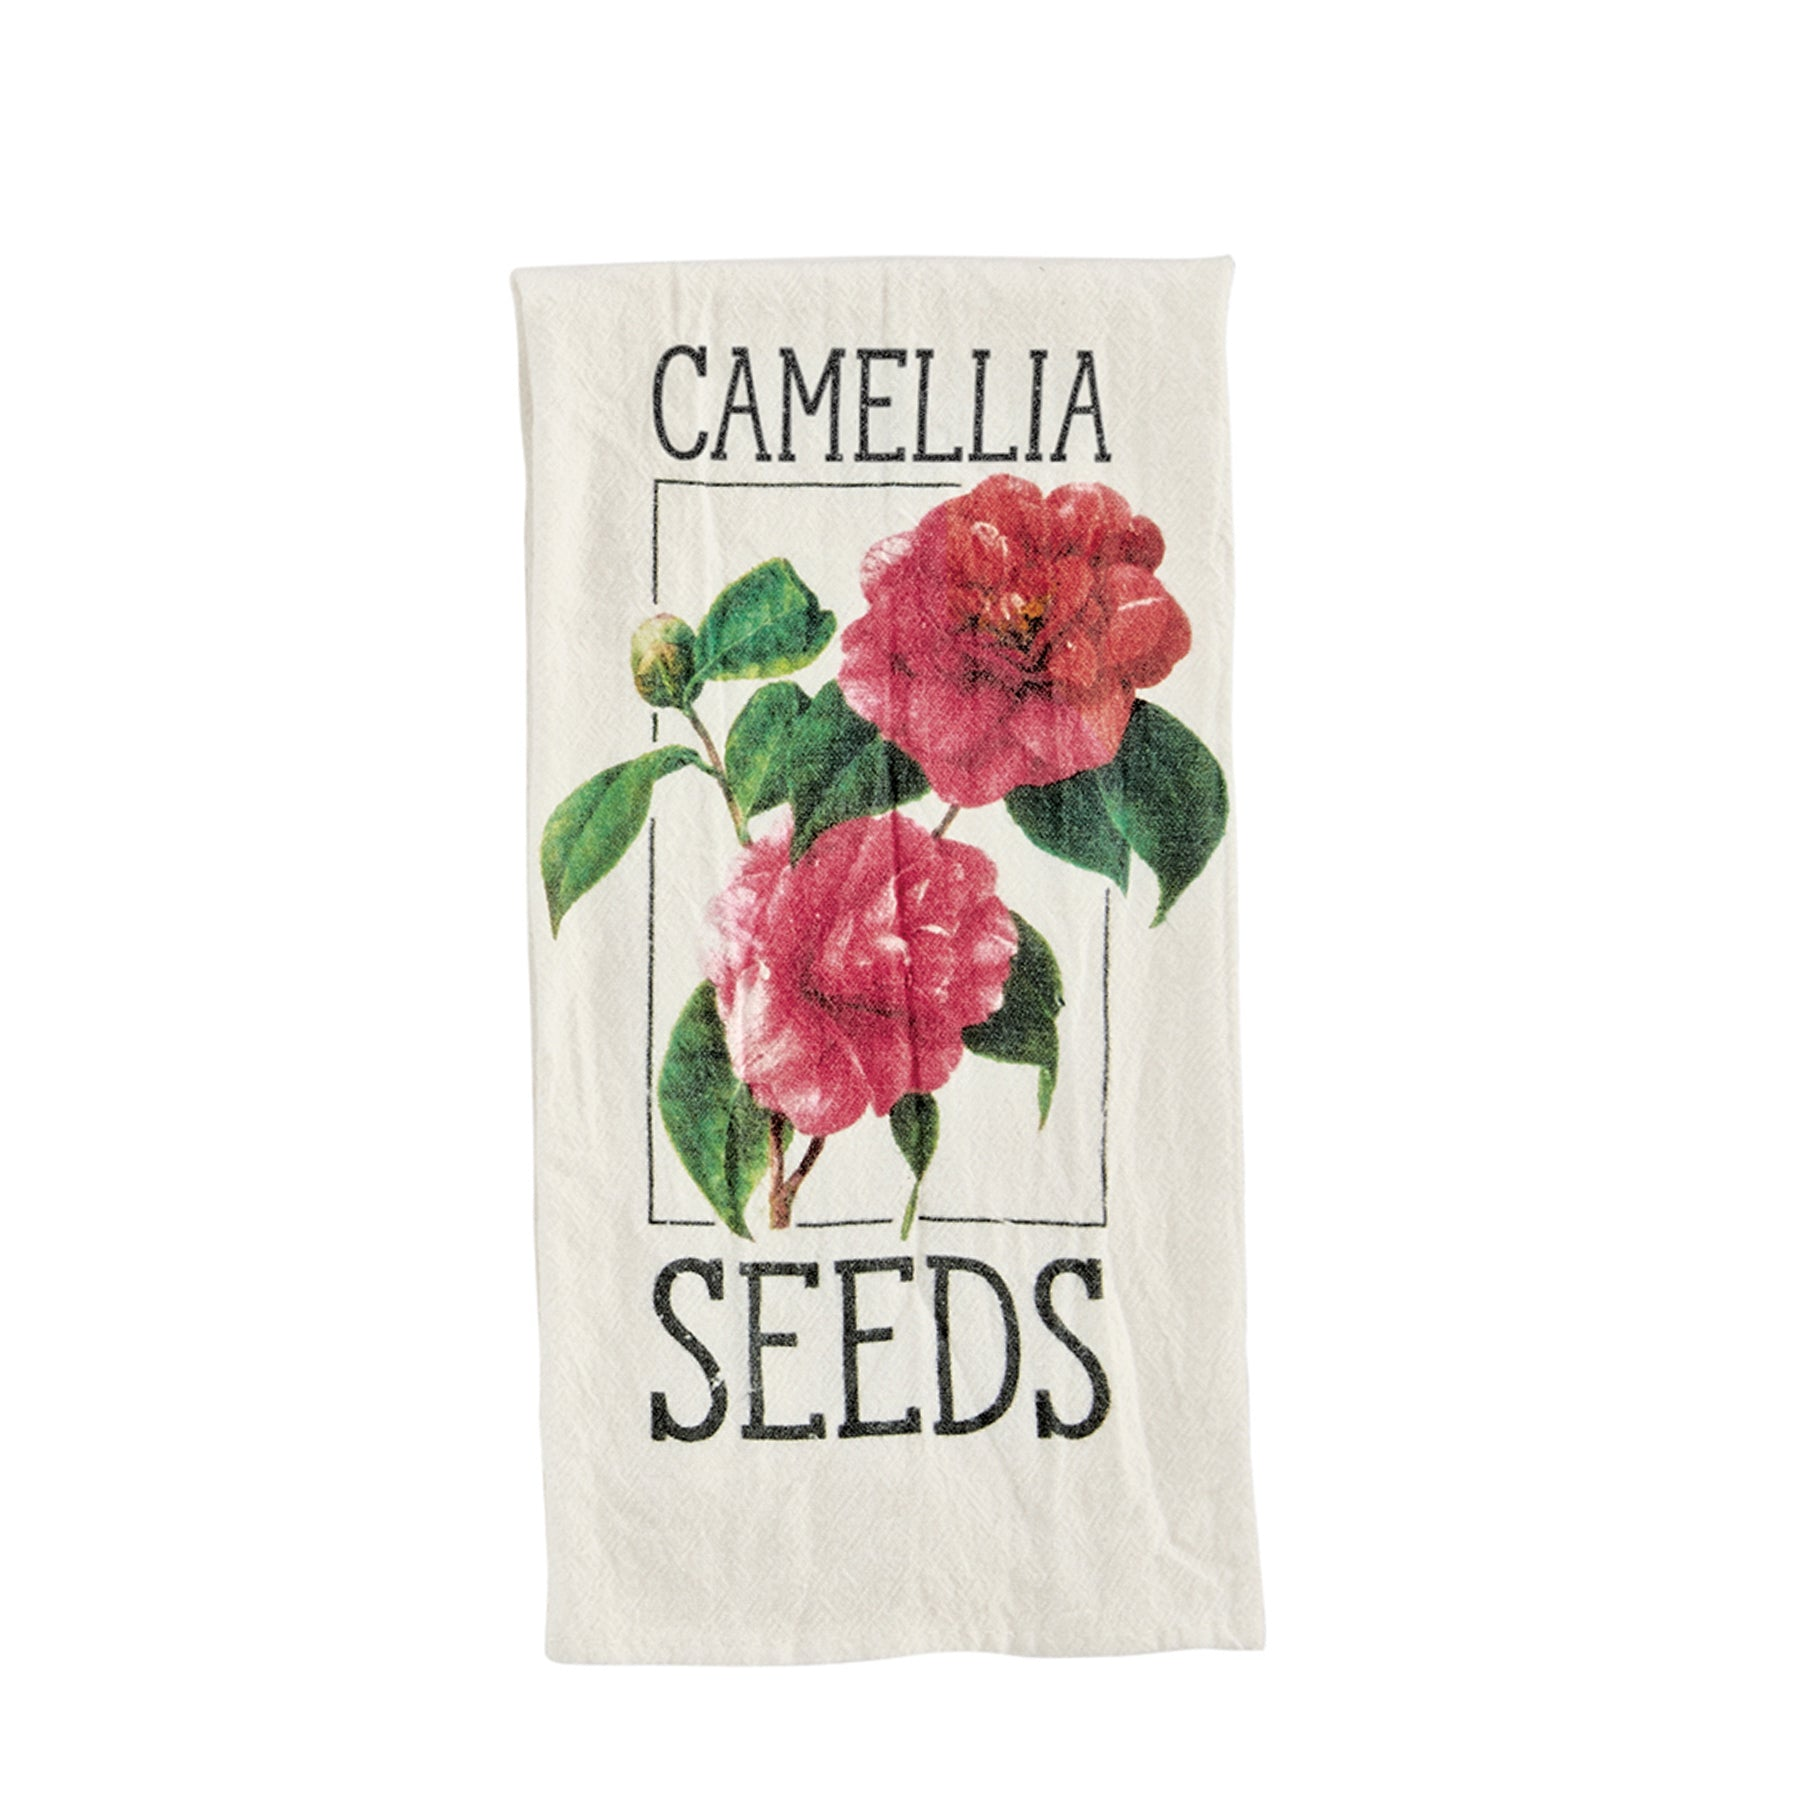 Camellia Seed Packet Towel